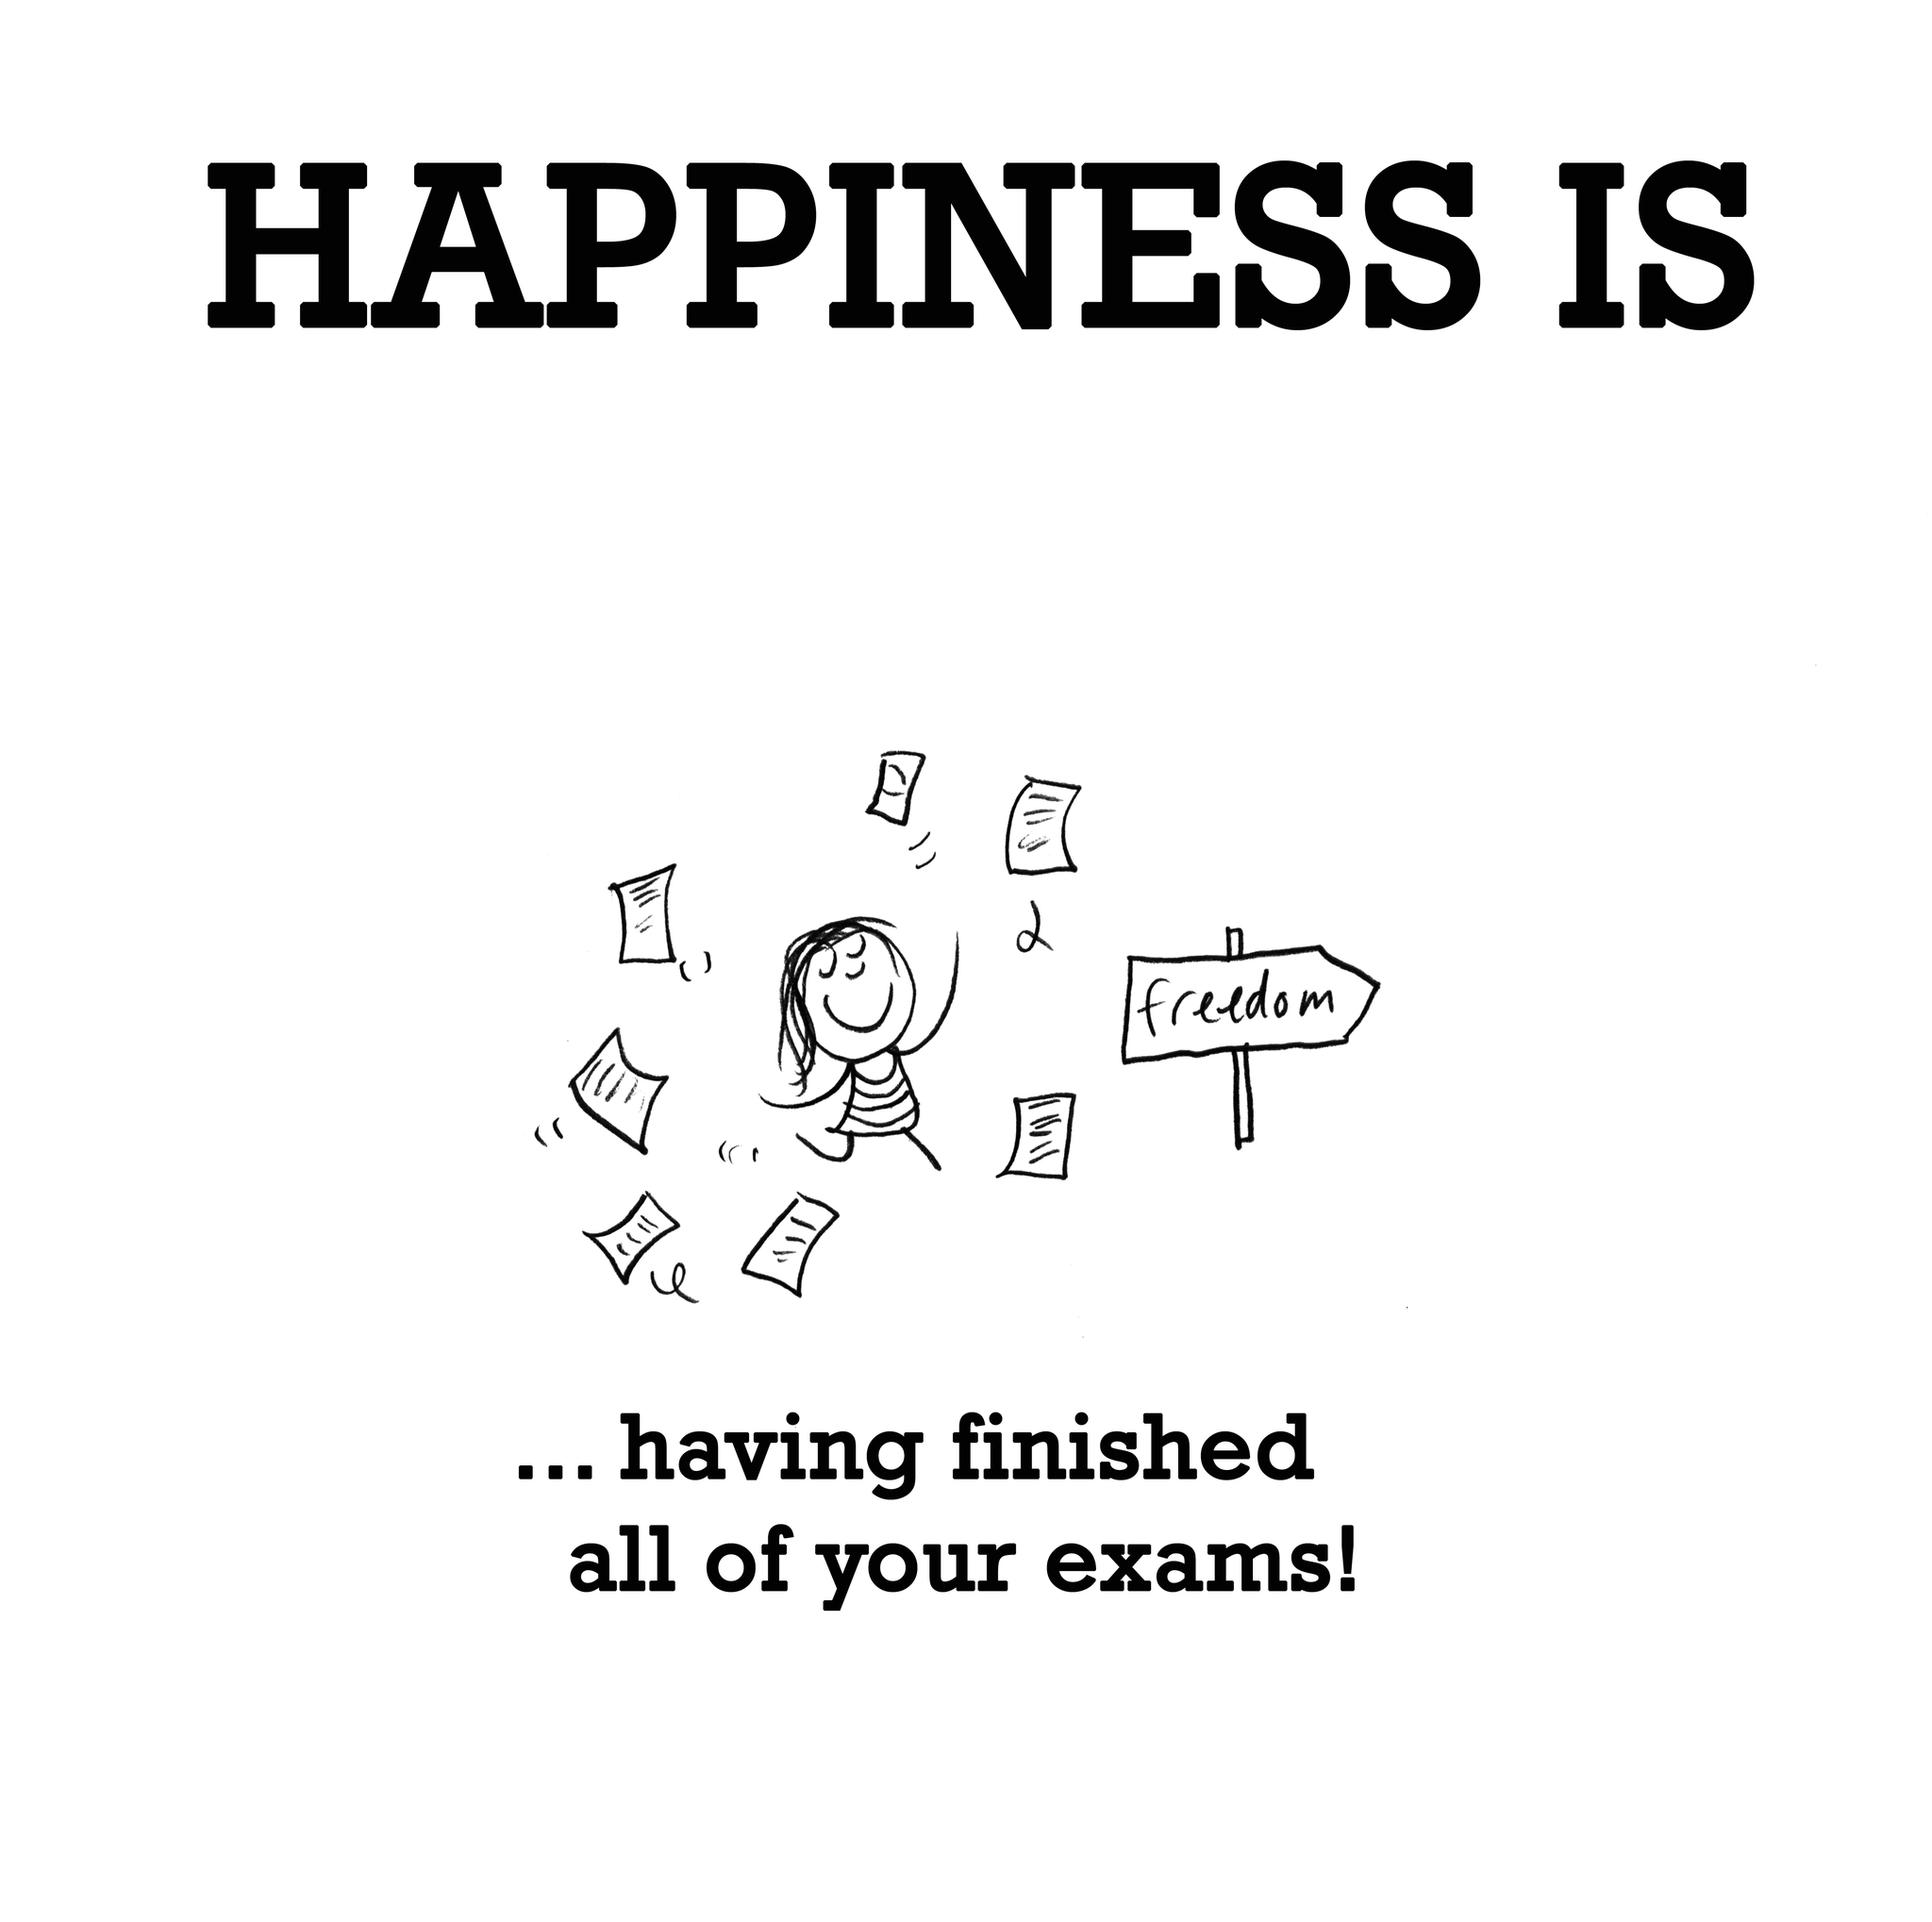 Happiness Is Exam Quotes Funny Exams Funny Exam Quotes